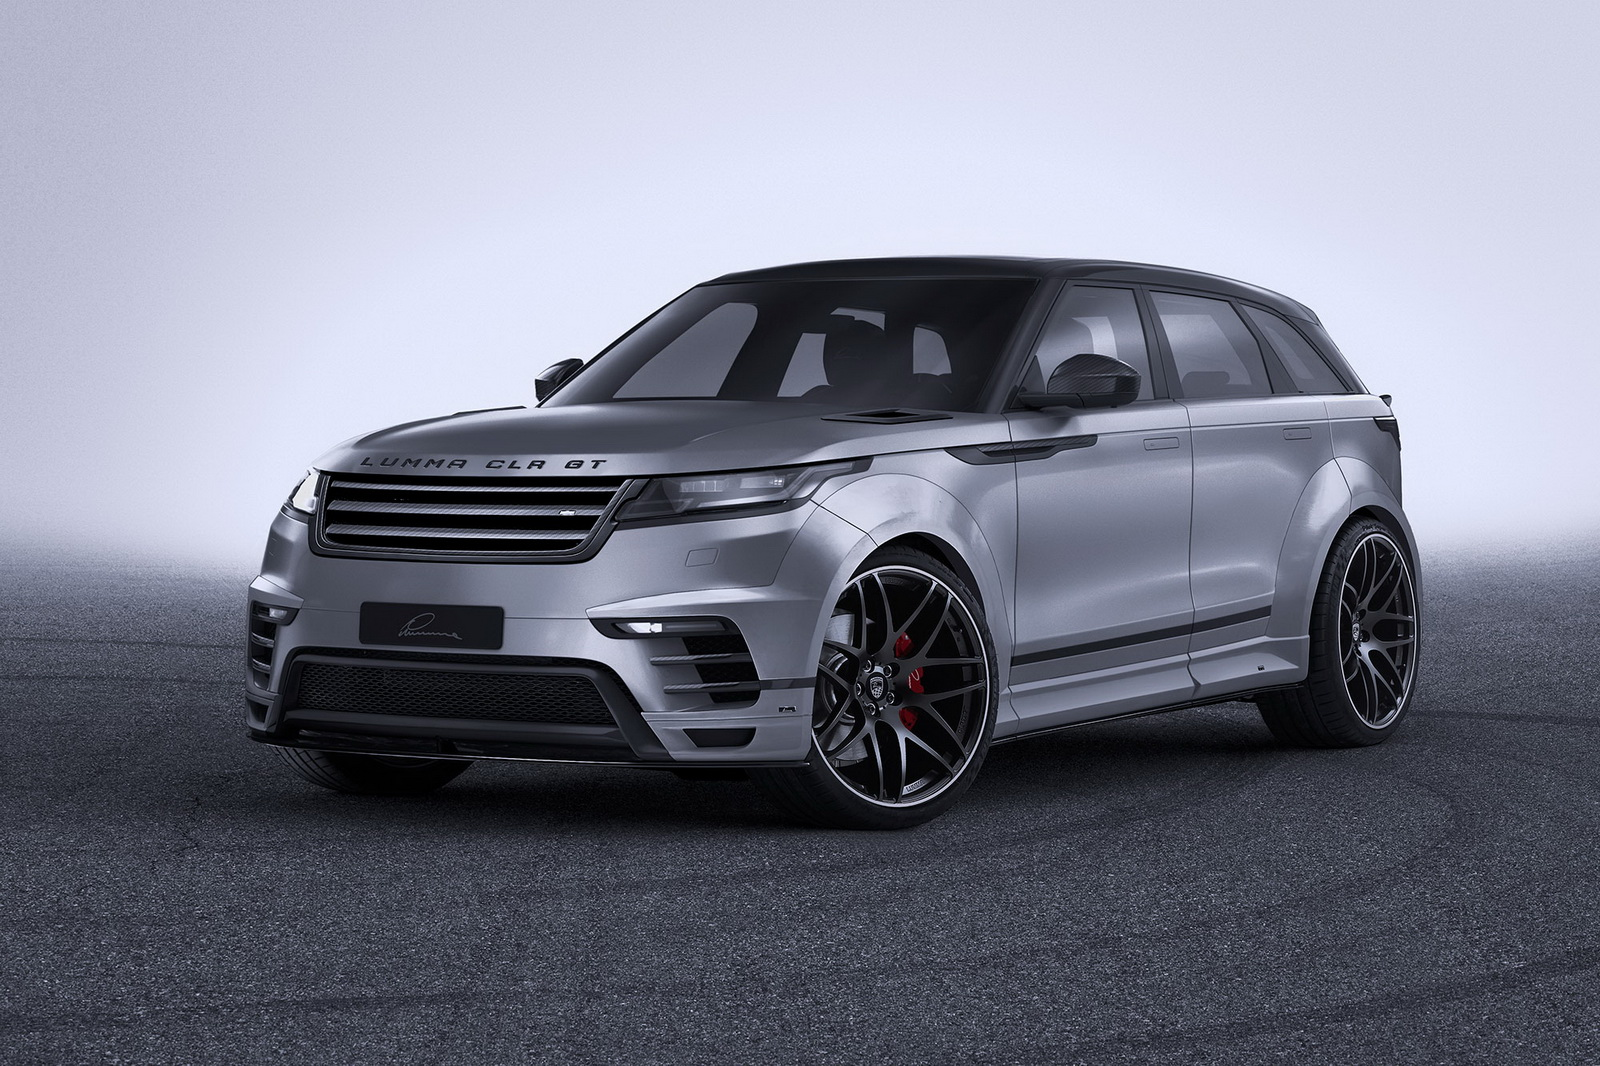 What Is Aluminum Made Of >> Widebody Range Rover Velar By Lumma Is All Show With No Extra Go | Carscoops